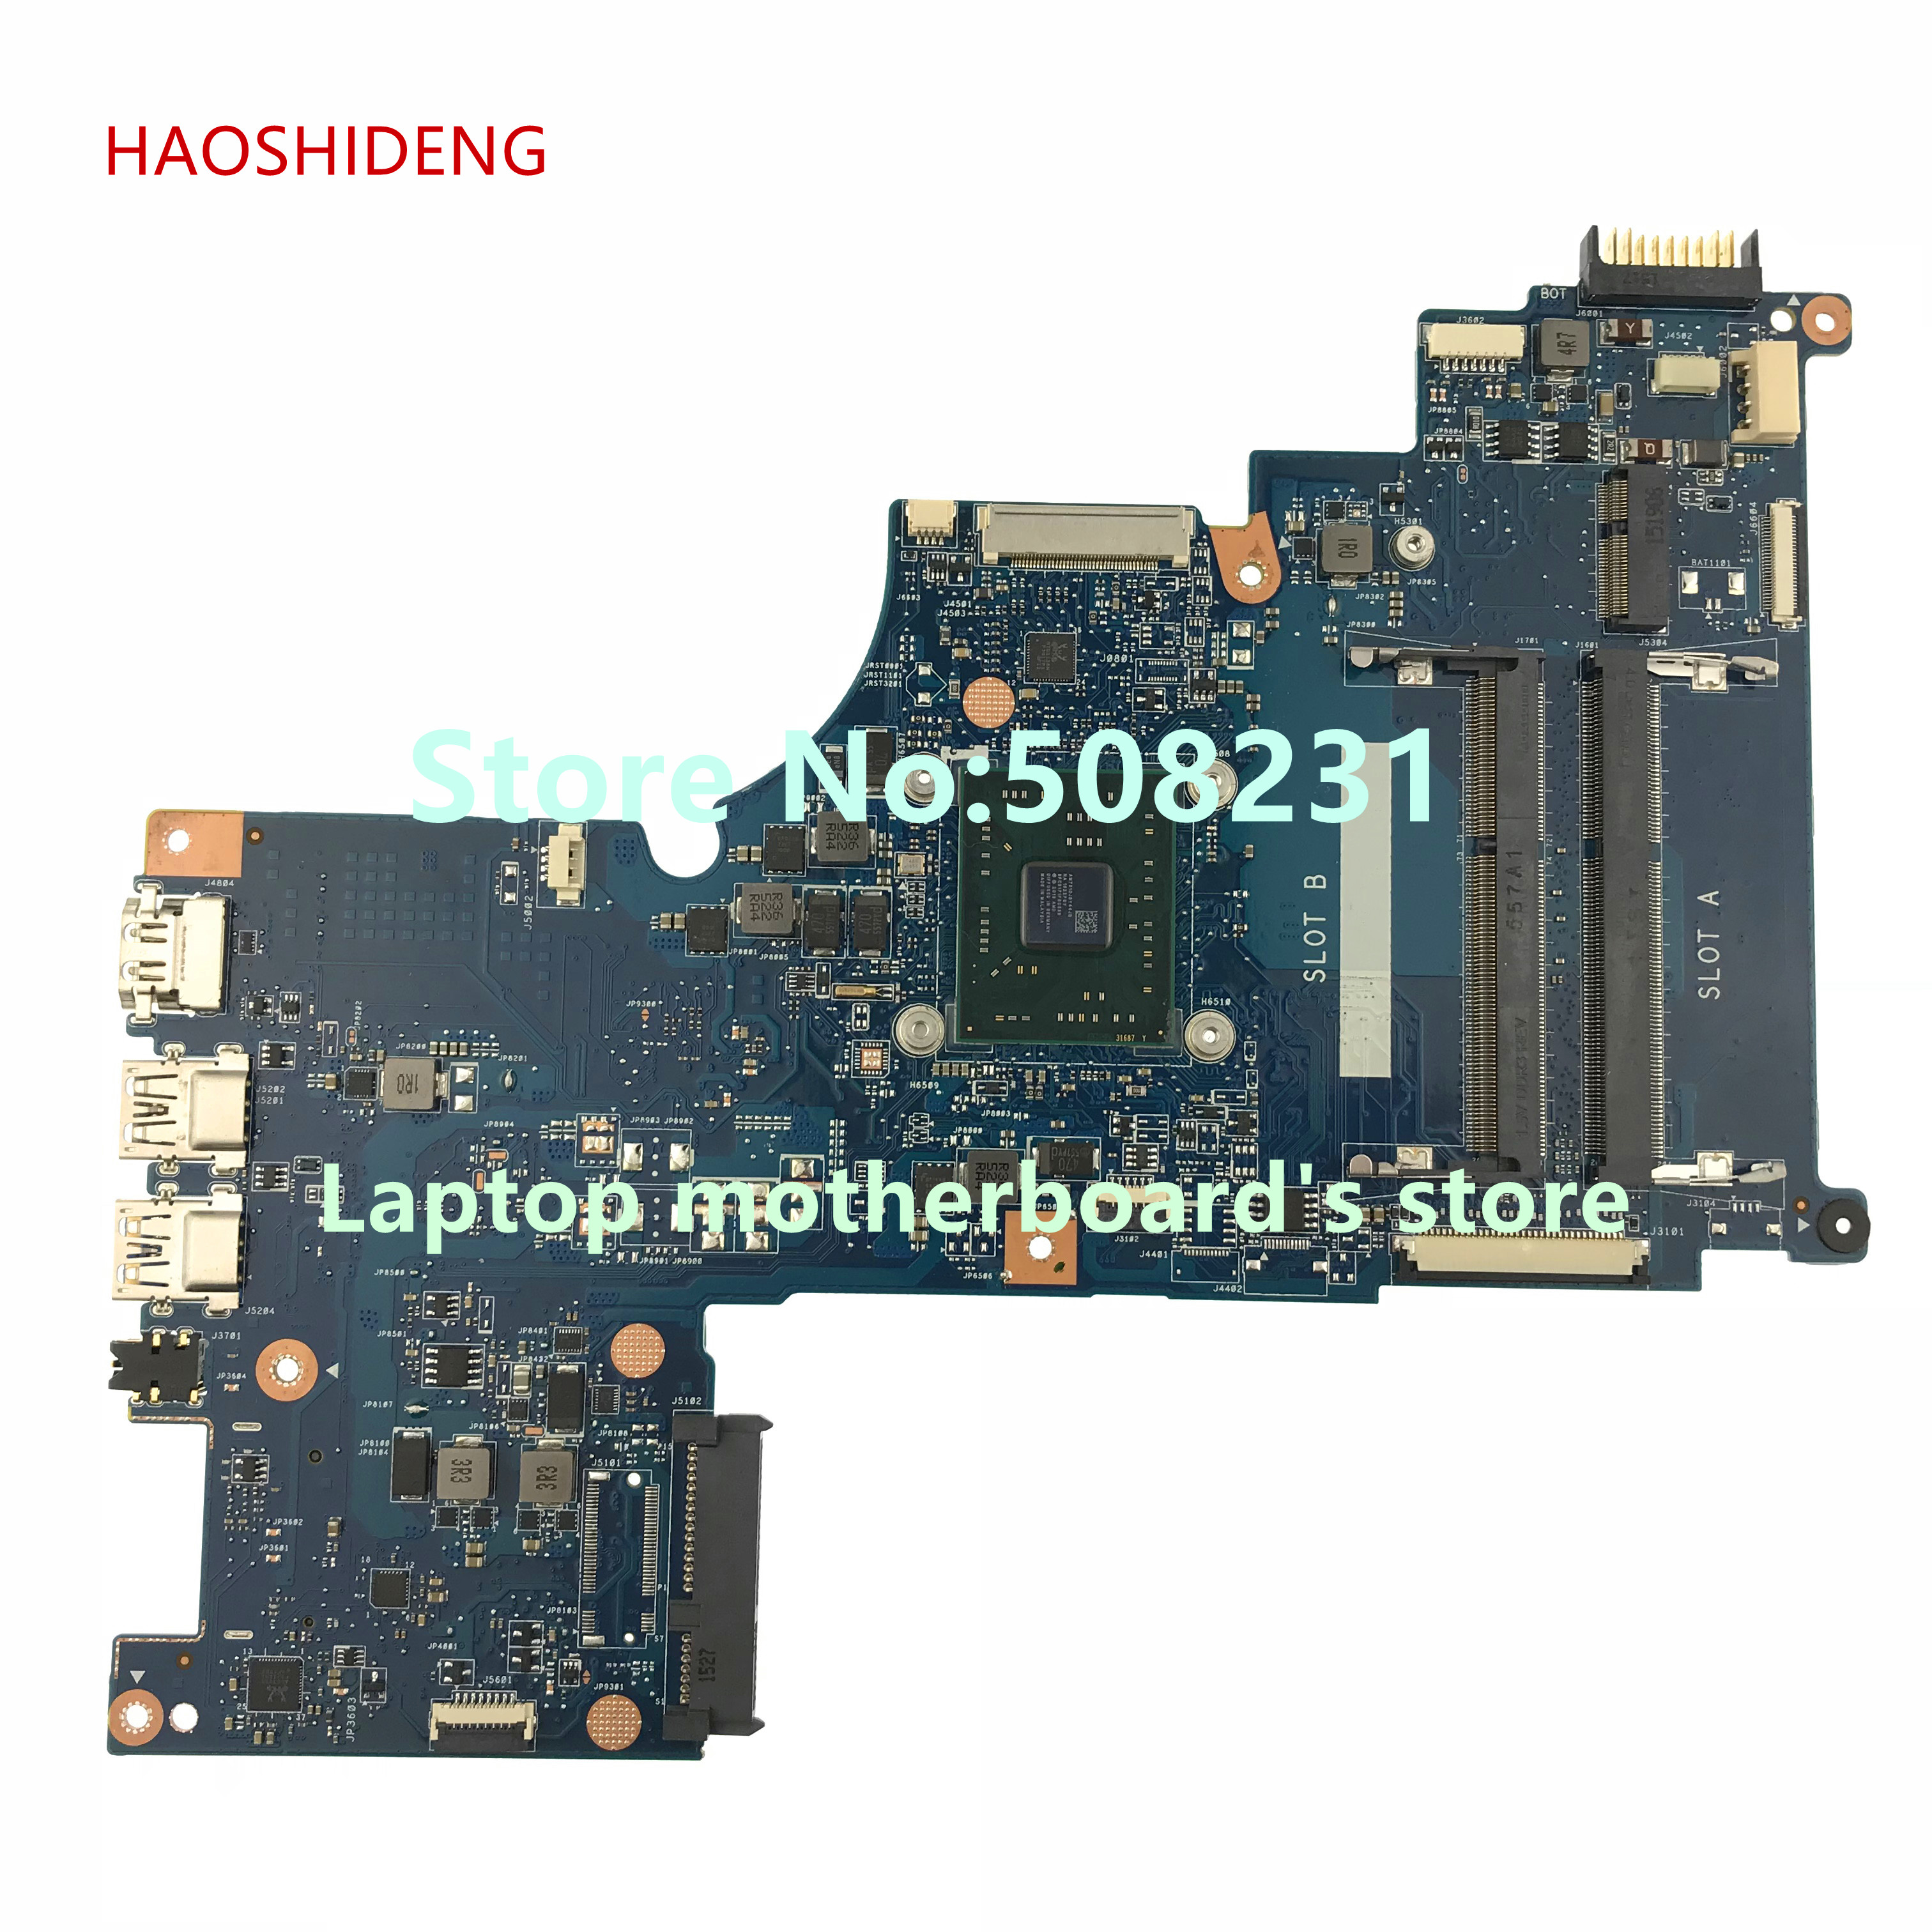 HAOSHIDENG H000087310 for Toshiba Satellite C70D-C C75D-C motherboard with A6-7310 2.0GHz CPU All functions fully Tested